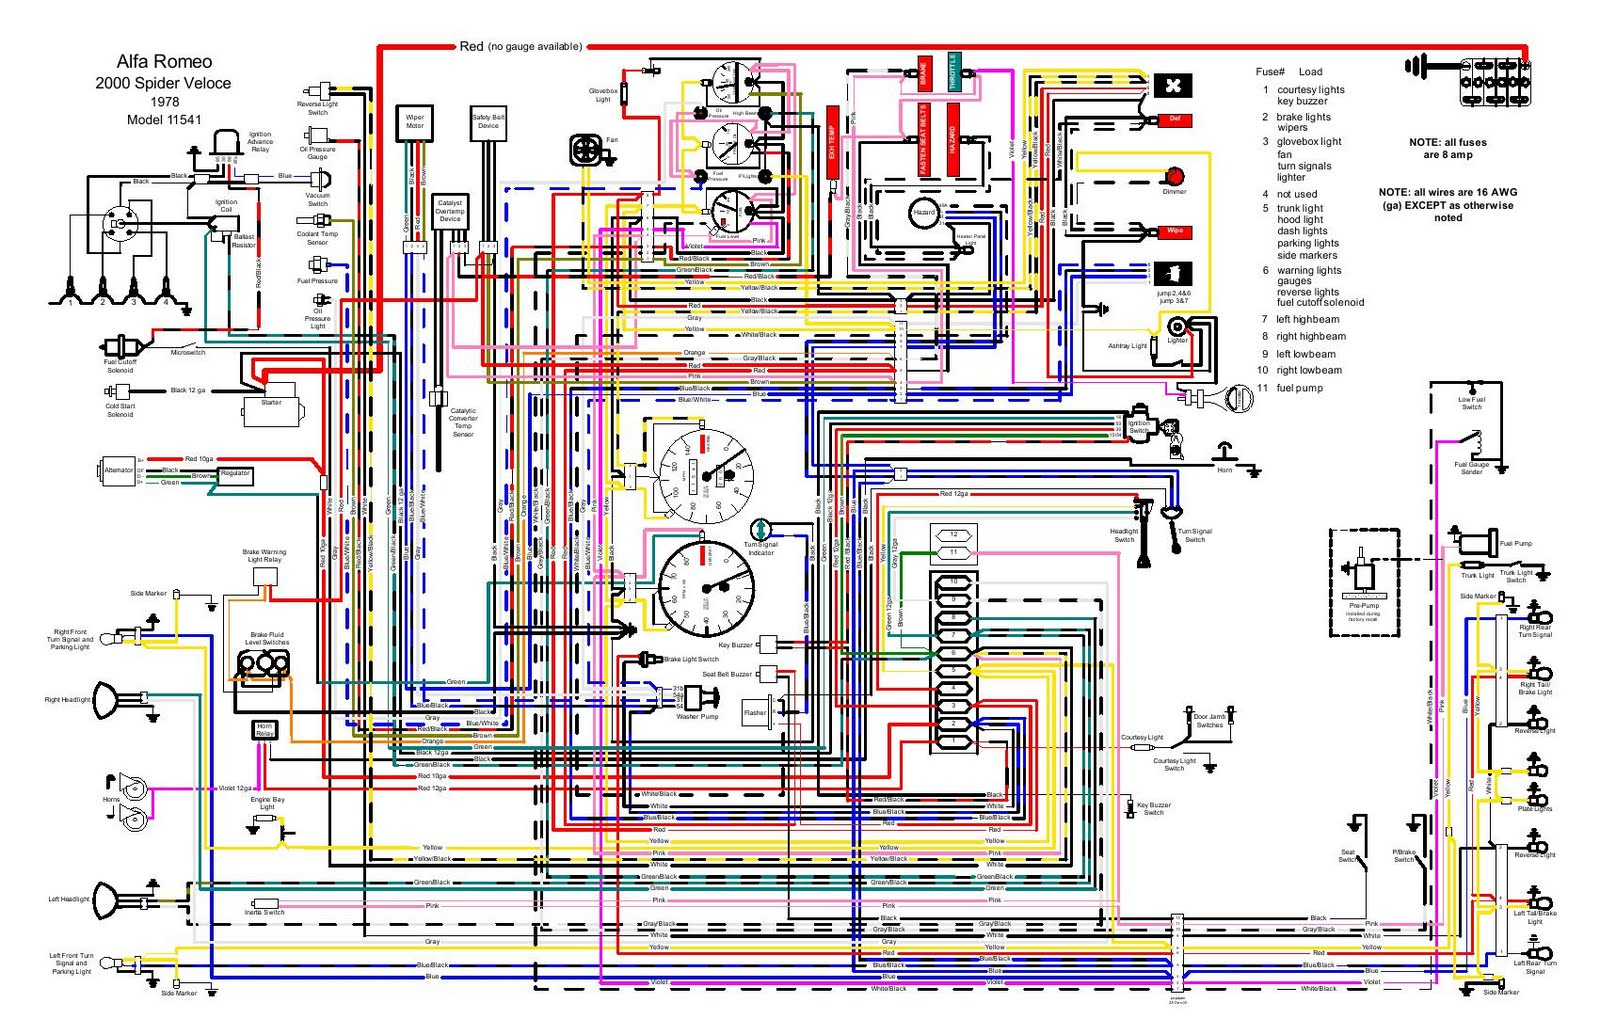 1978_Alfa_Romeo_2000_Spider_Wiring alfa romeo spider wiring diagram volvo amazon wiring diagram auto wiring diagram at gsmx.co